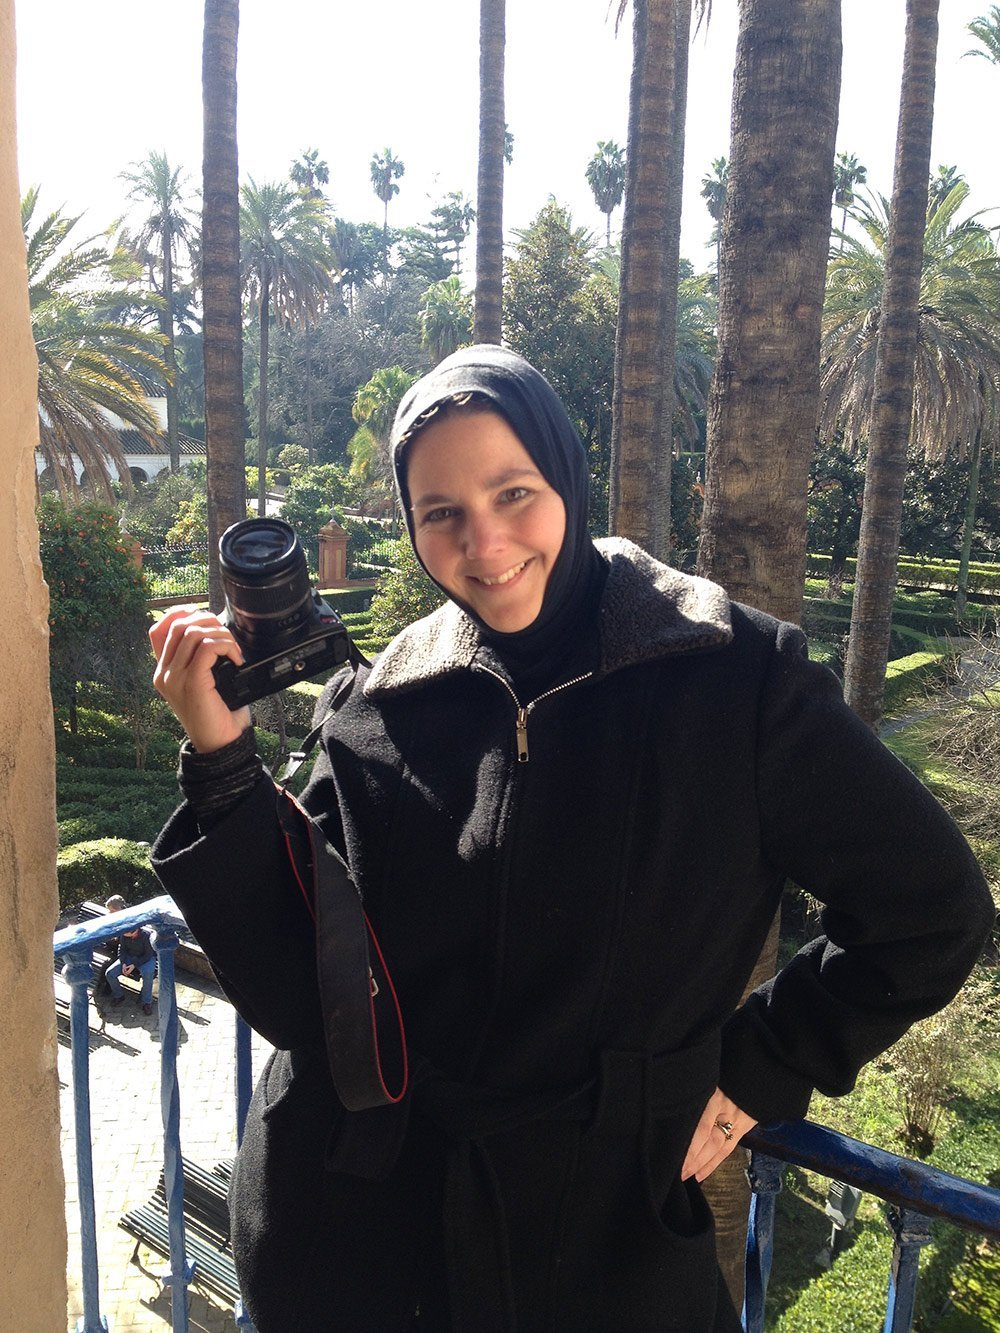 A different kind of travel blogger and what it's like to travel as a Muslim woman. A guest post by Amanda from Maroc Mama.